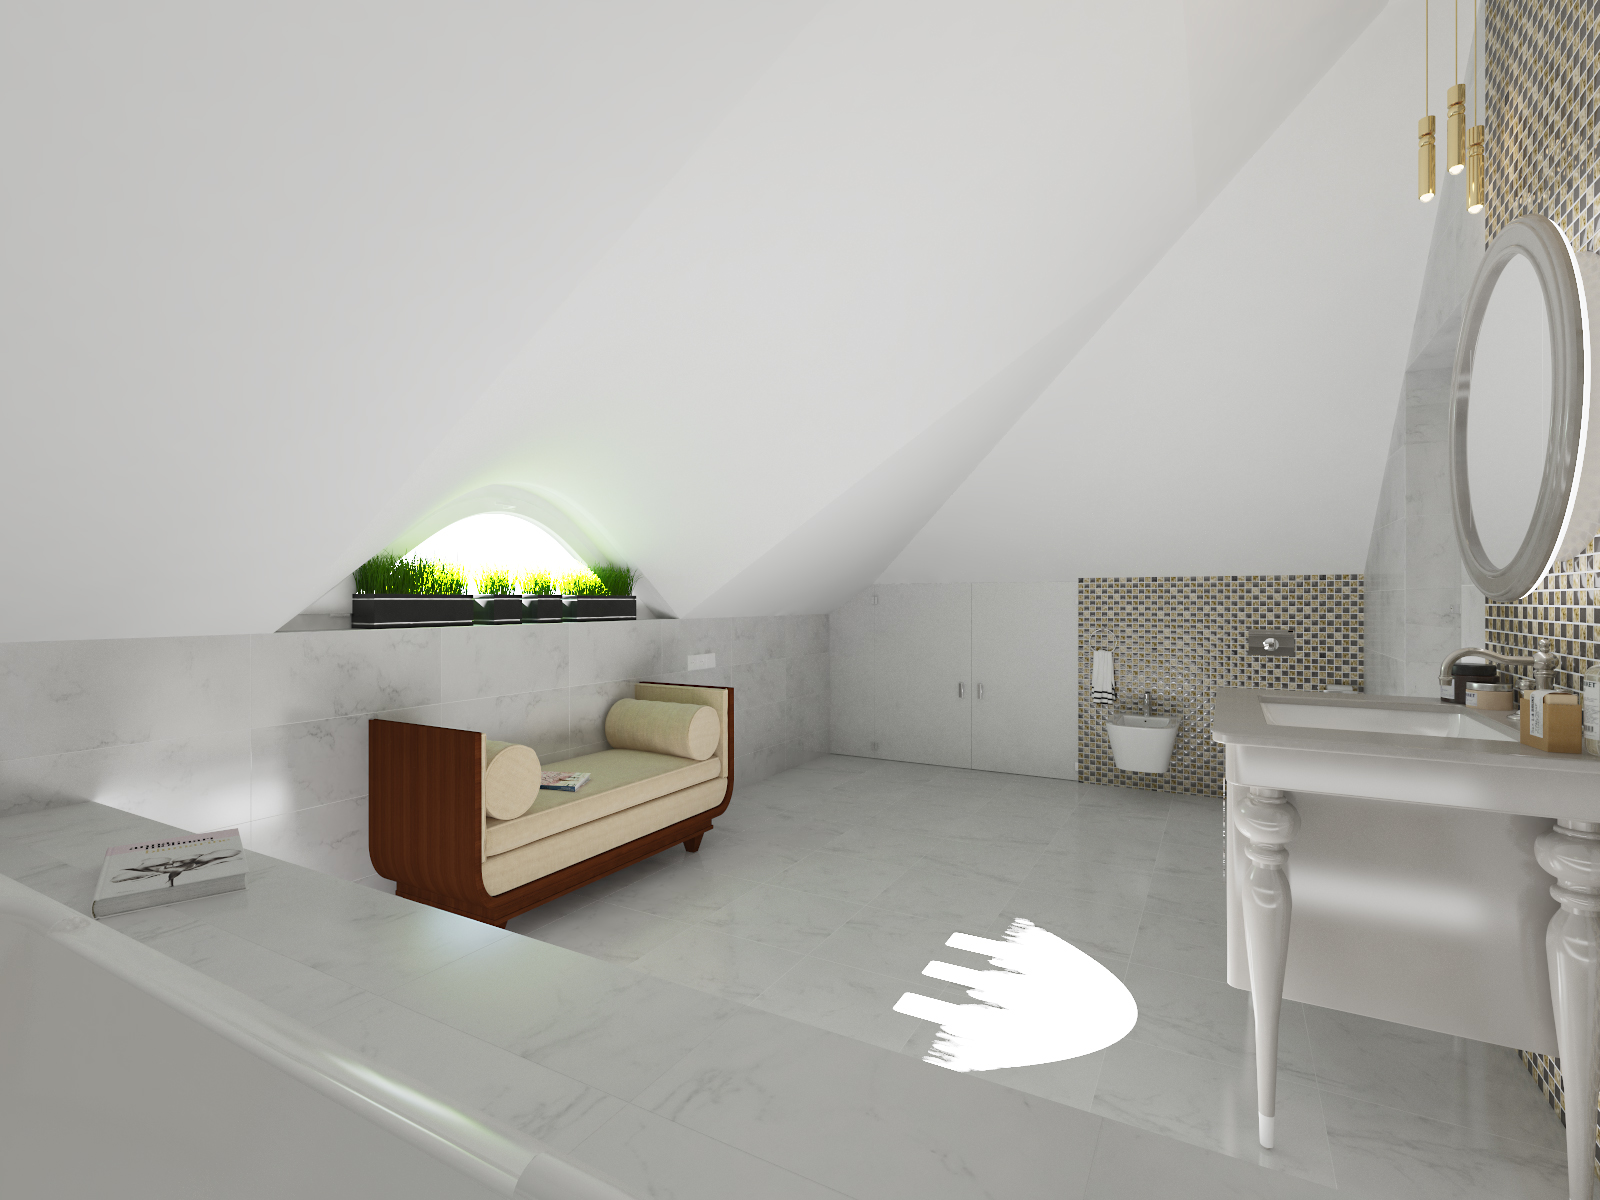 Bathroom 3D visualization